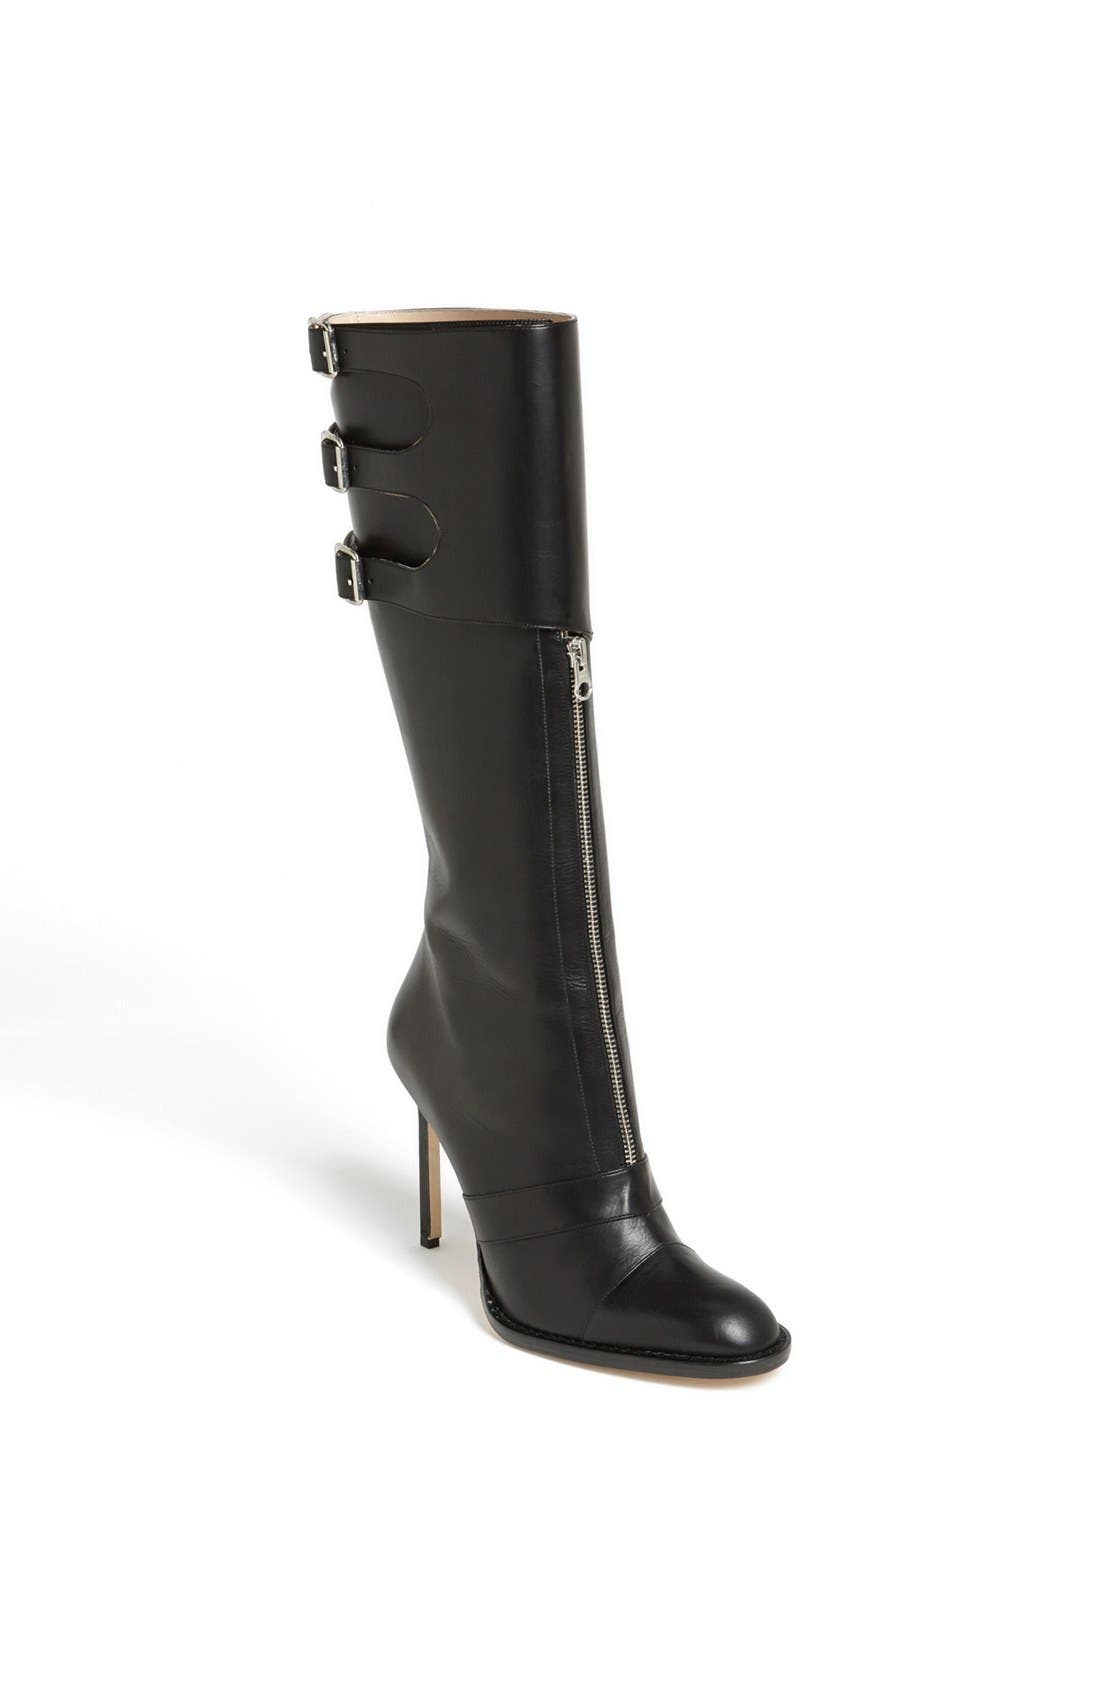 Main Image - Manolo Blahnik Tall Leather Boot